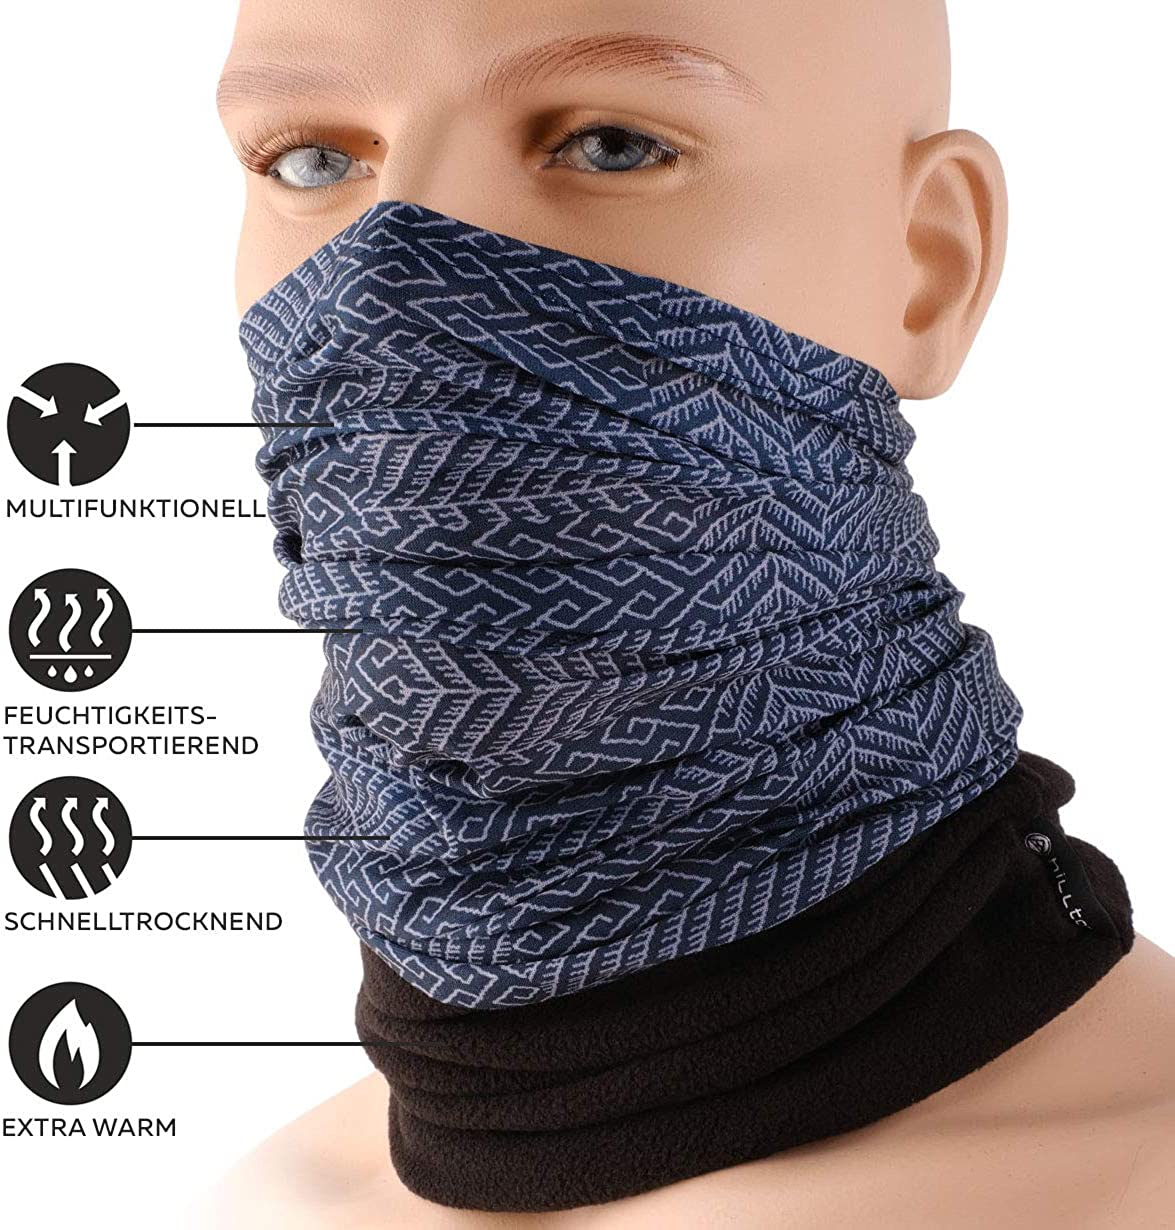 motorcycle scarf shawl for both men and women cool design in trendy colours ski face mask tube scarf HILLTOP Polar multifunctional scarf with fleece